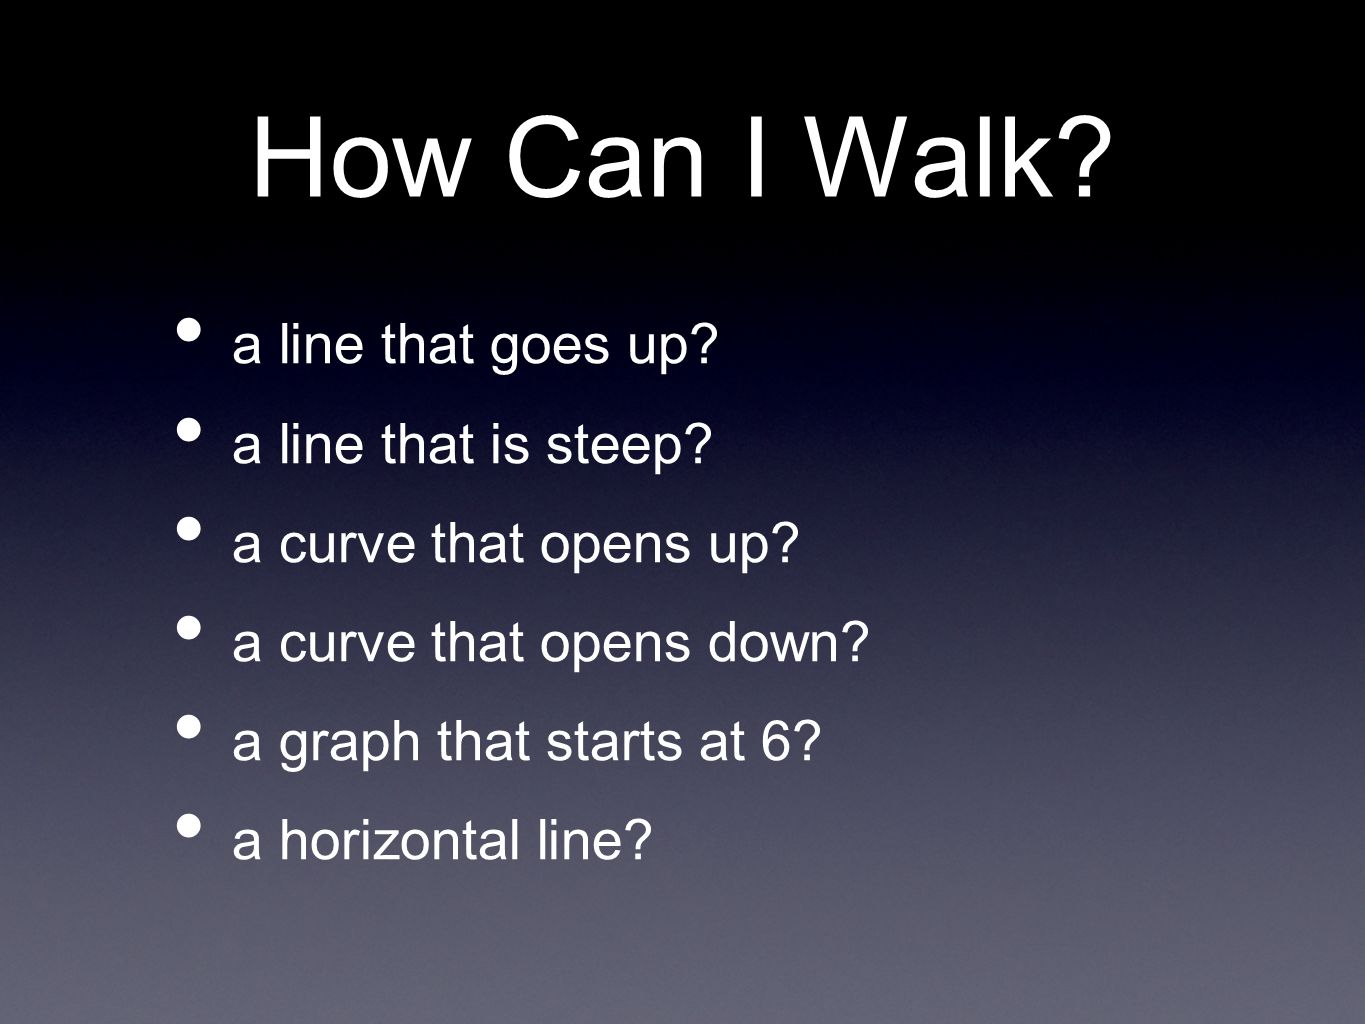 How Can I Walk? a line that goes up? a line that is steep? a curve that opens up? a curve that opens down? a graph that starts at 6? a horizontal line